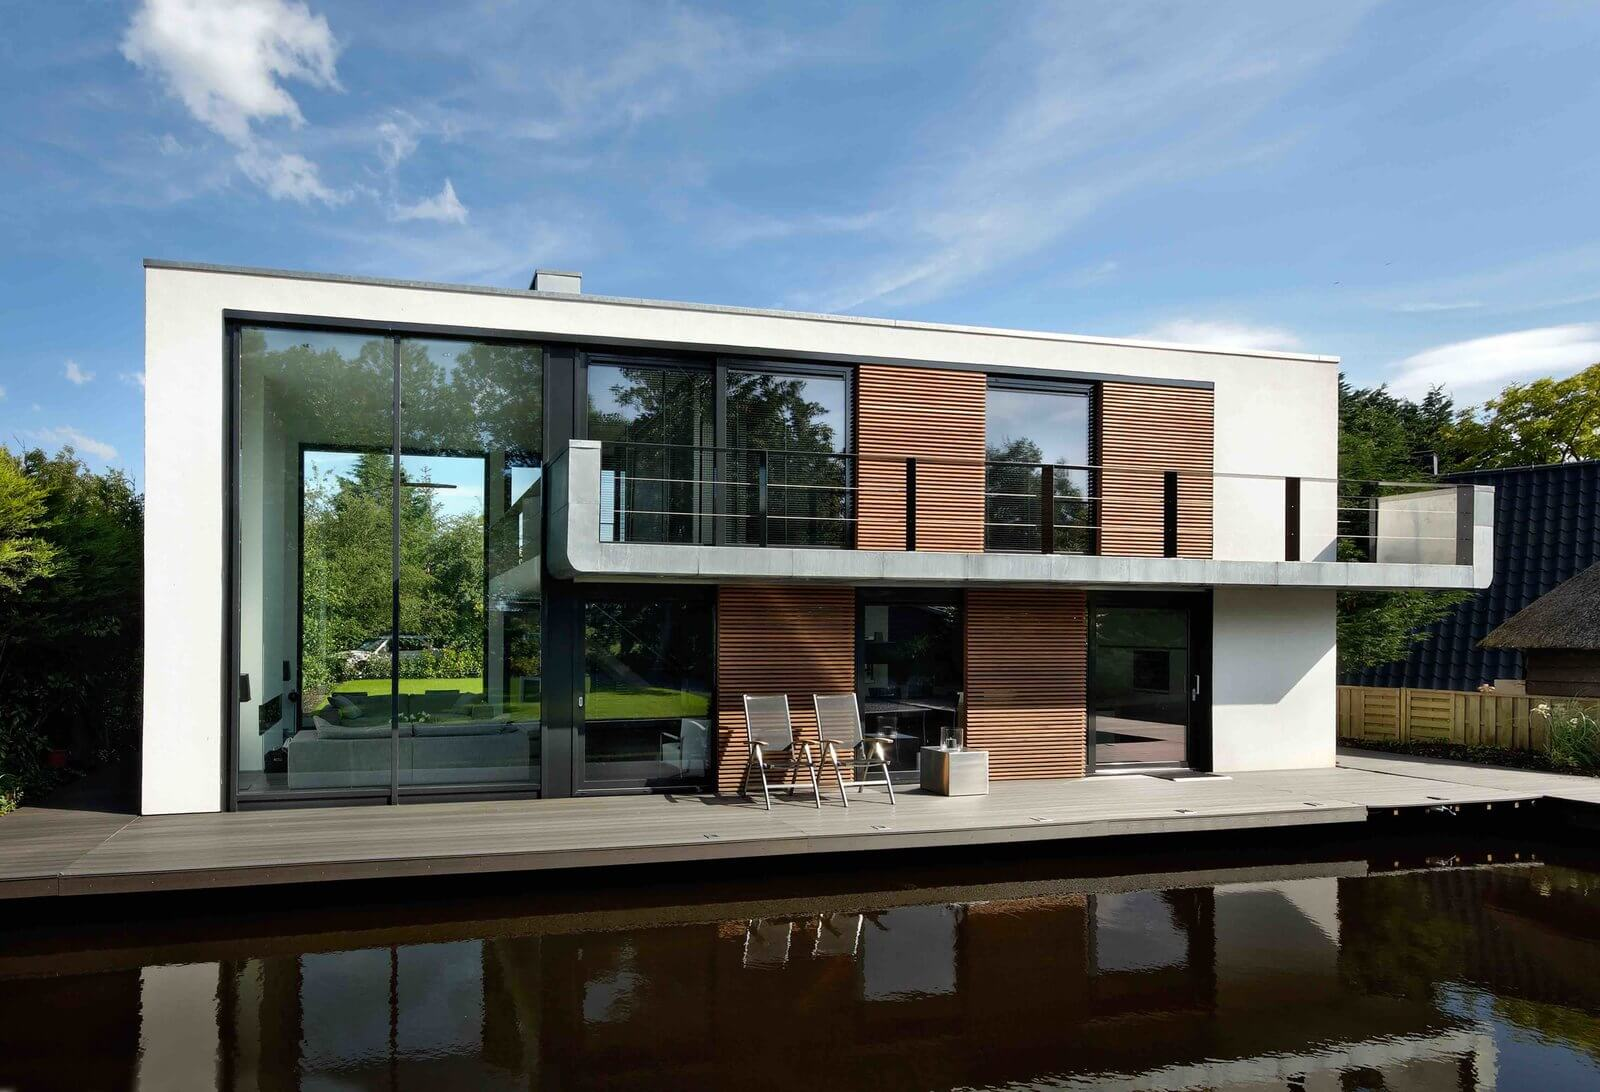 Stupendous 6 Modular Houseboat And Floating Home Manufacturers Around Download Free Architecture Designs Intelgarnamadebymaigaardcom